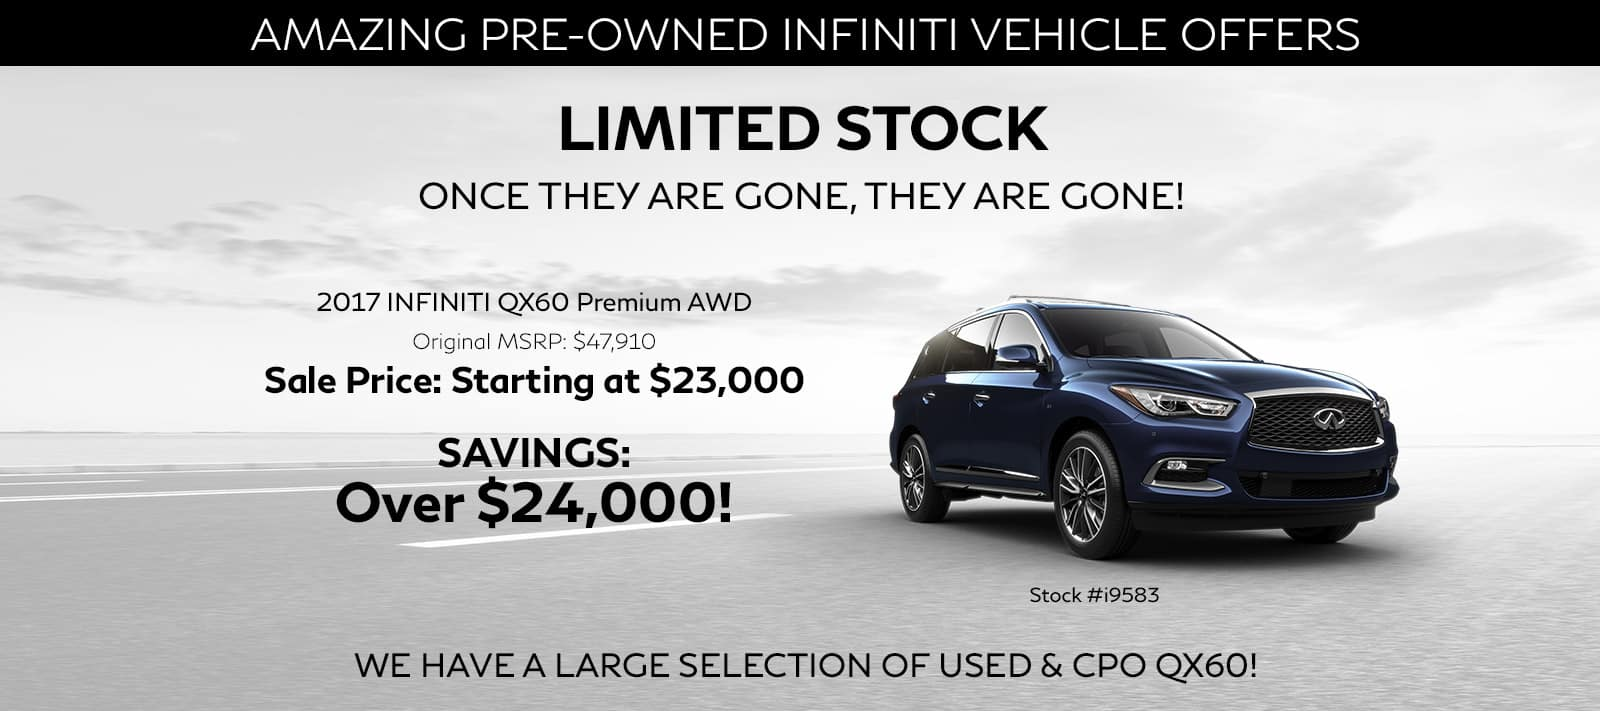 Amazing Pre-Owned QX60 Vehicle Offers — Limited Stock - Once They Are Gone, They Are Gone! Offer : 2017 QX60 QX60 Premium AWD Original MSRP: $47,910 Sale Price: Starting at $23,000 Savings: Over $24,000! Image of the Vehicle, Paired With Small Text: Stock #i9583 We Have a Large Selection of Used & CPO QX60!